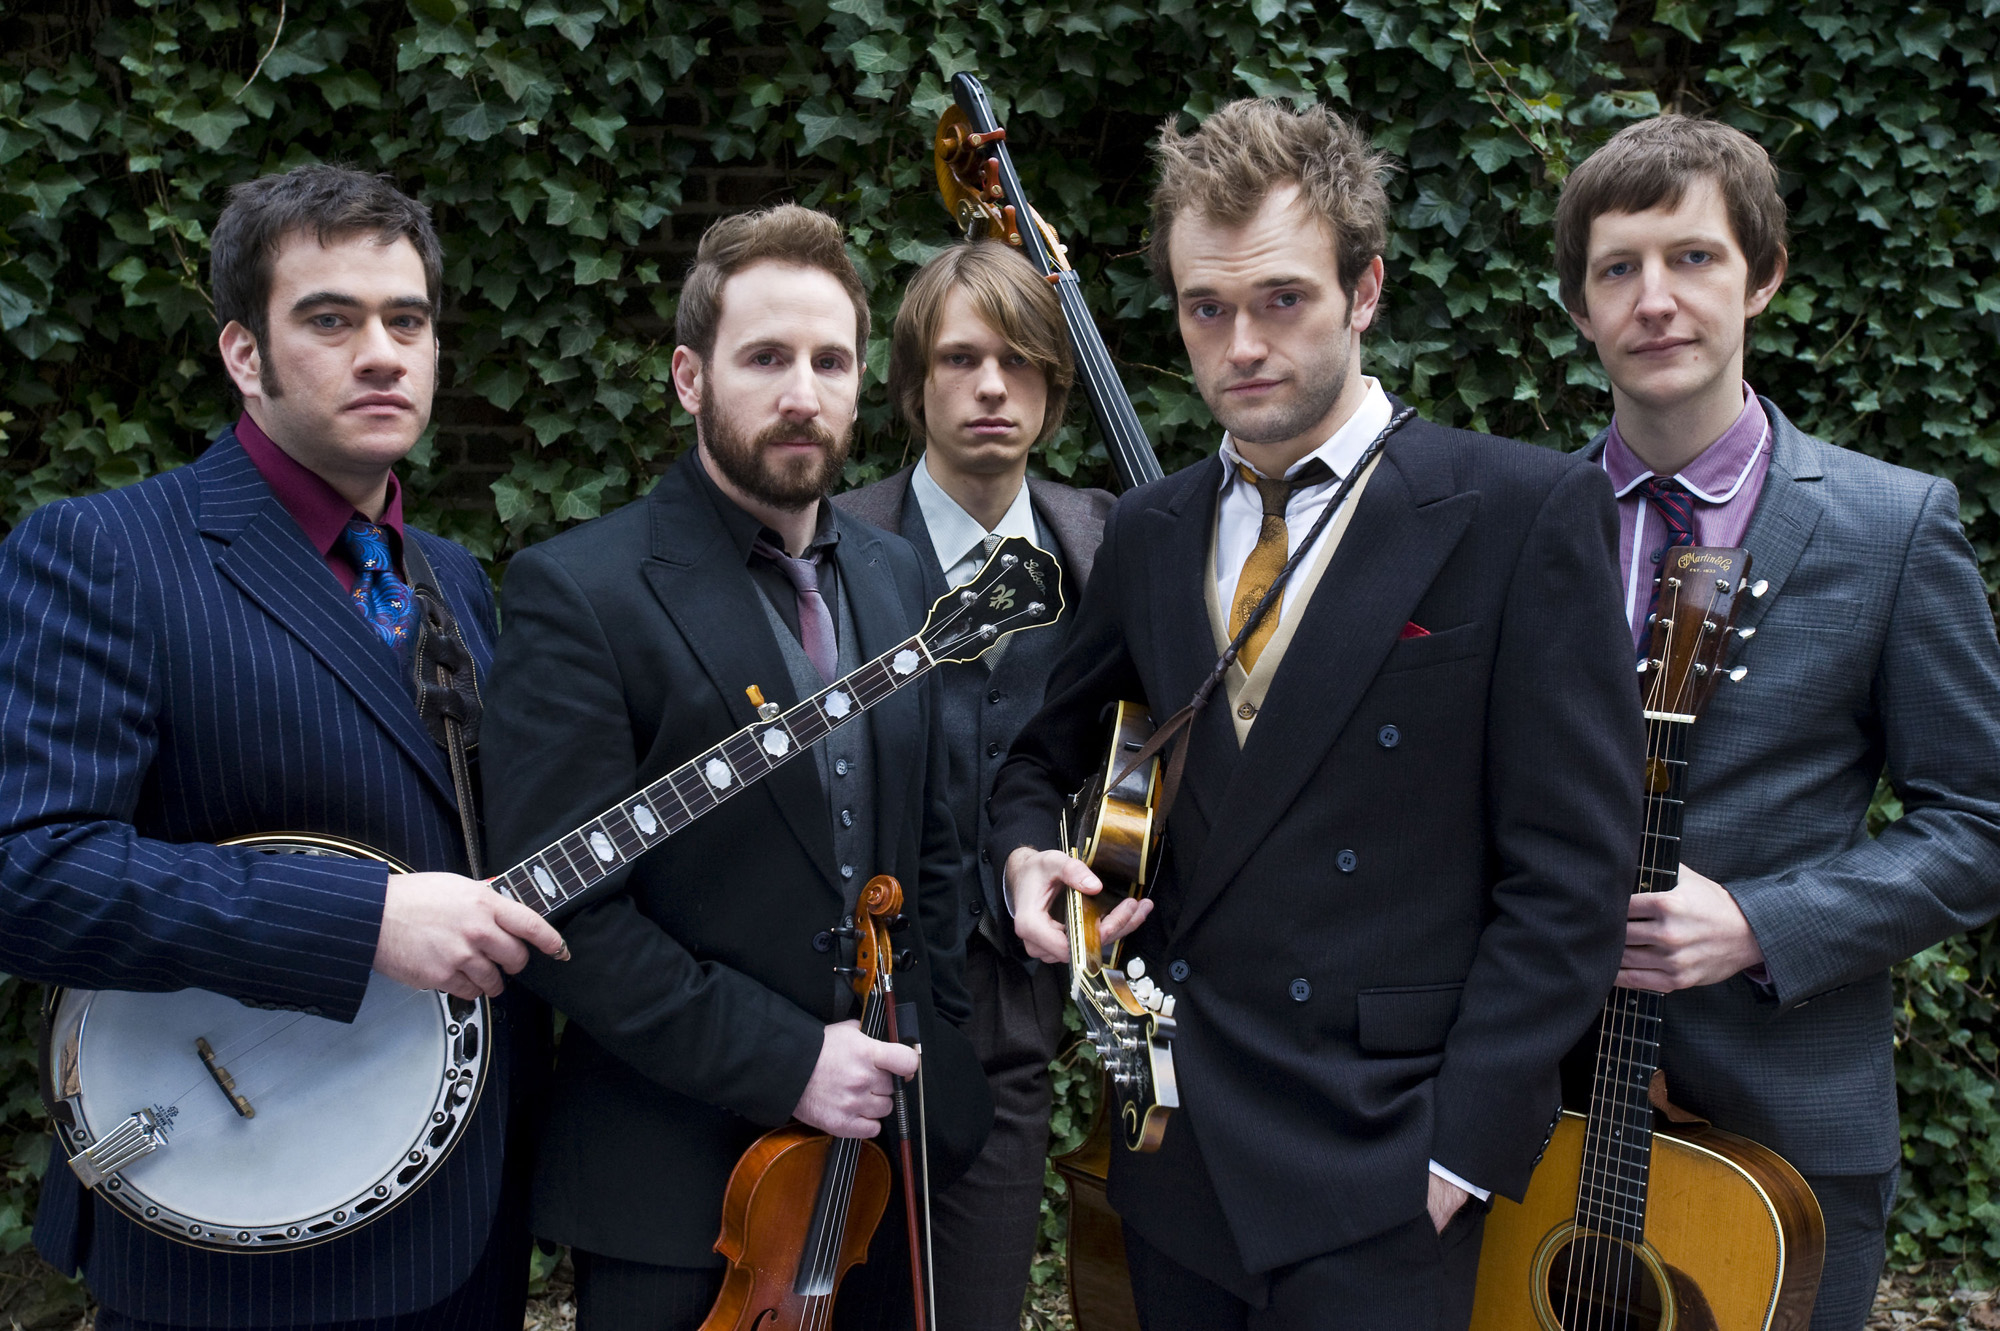 Punch Brothers at the Green Music Center in Rohnert Park, Sonoma County, California